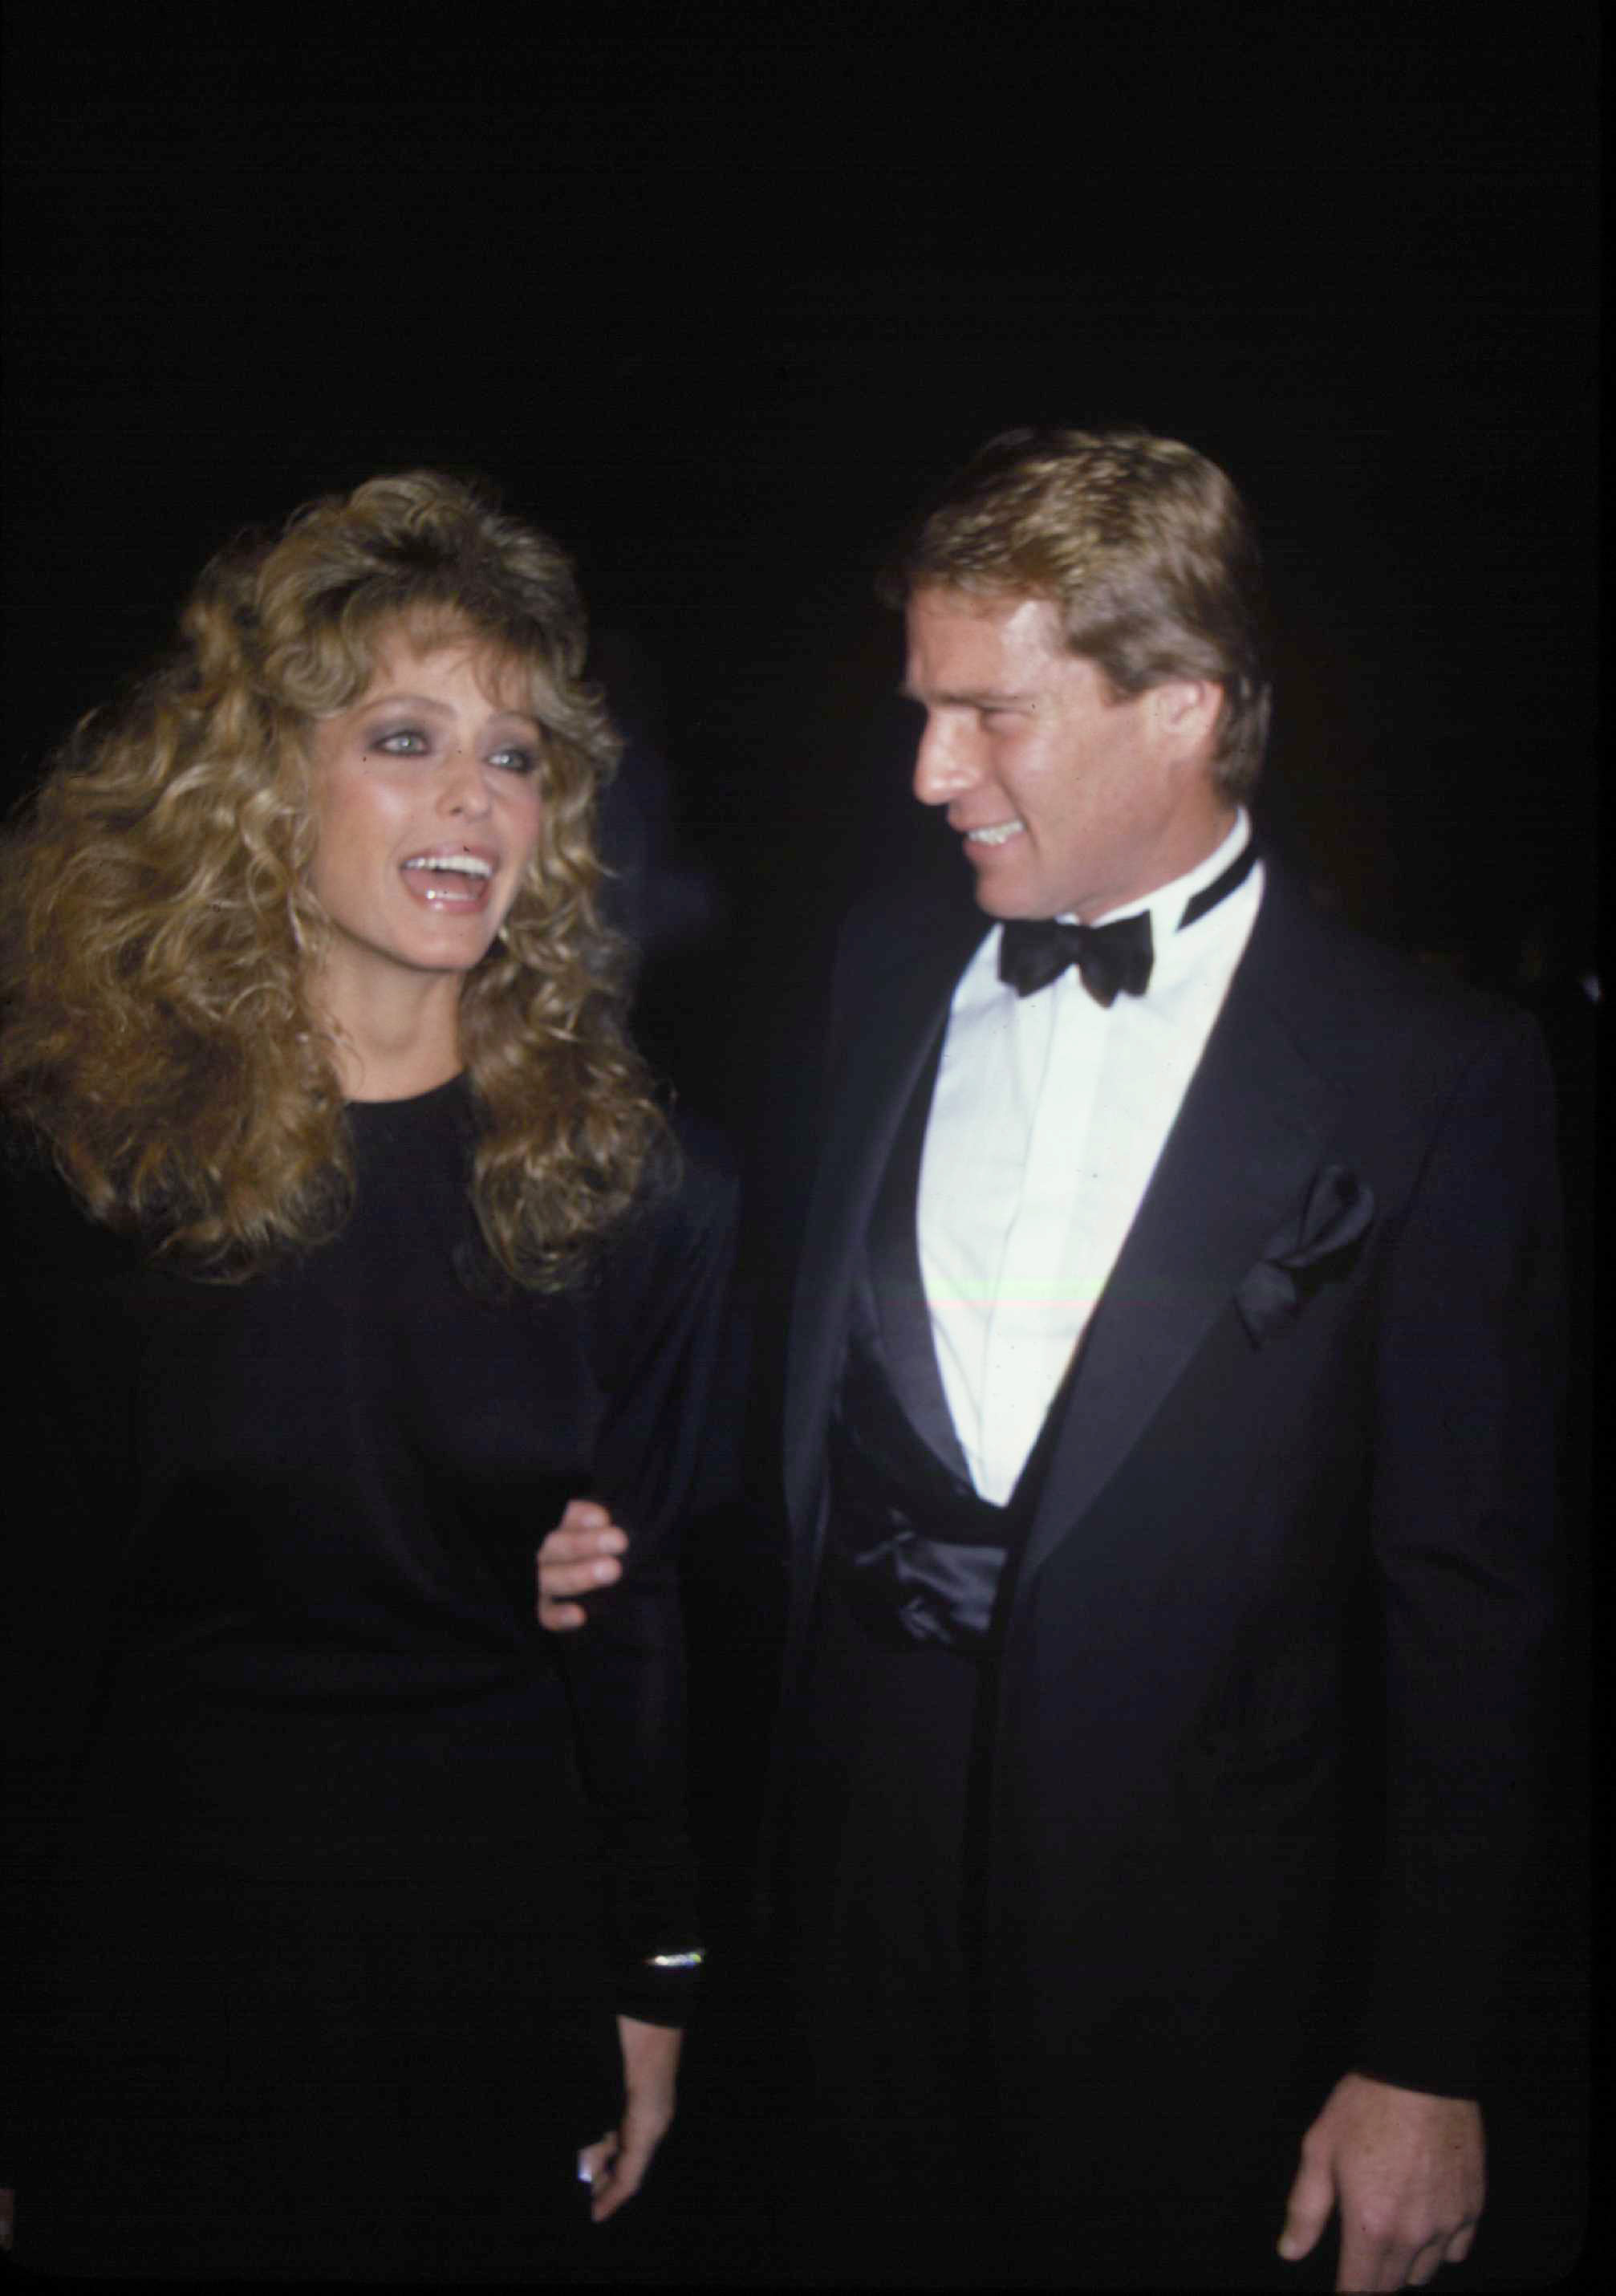 Ryan O'Neil and Farrah fawcett